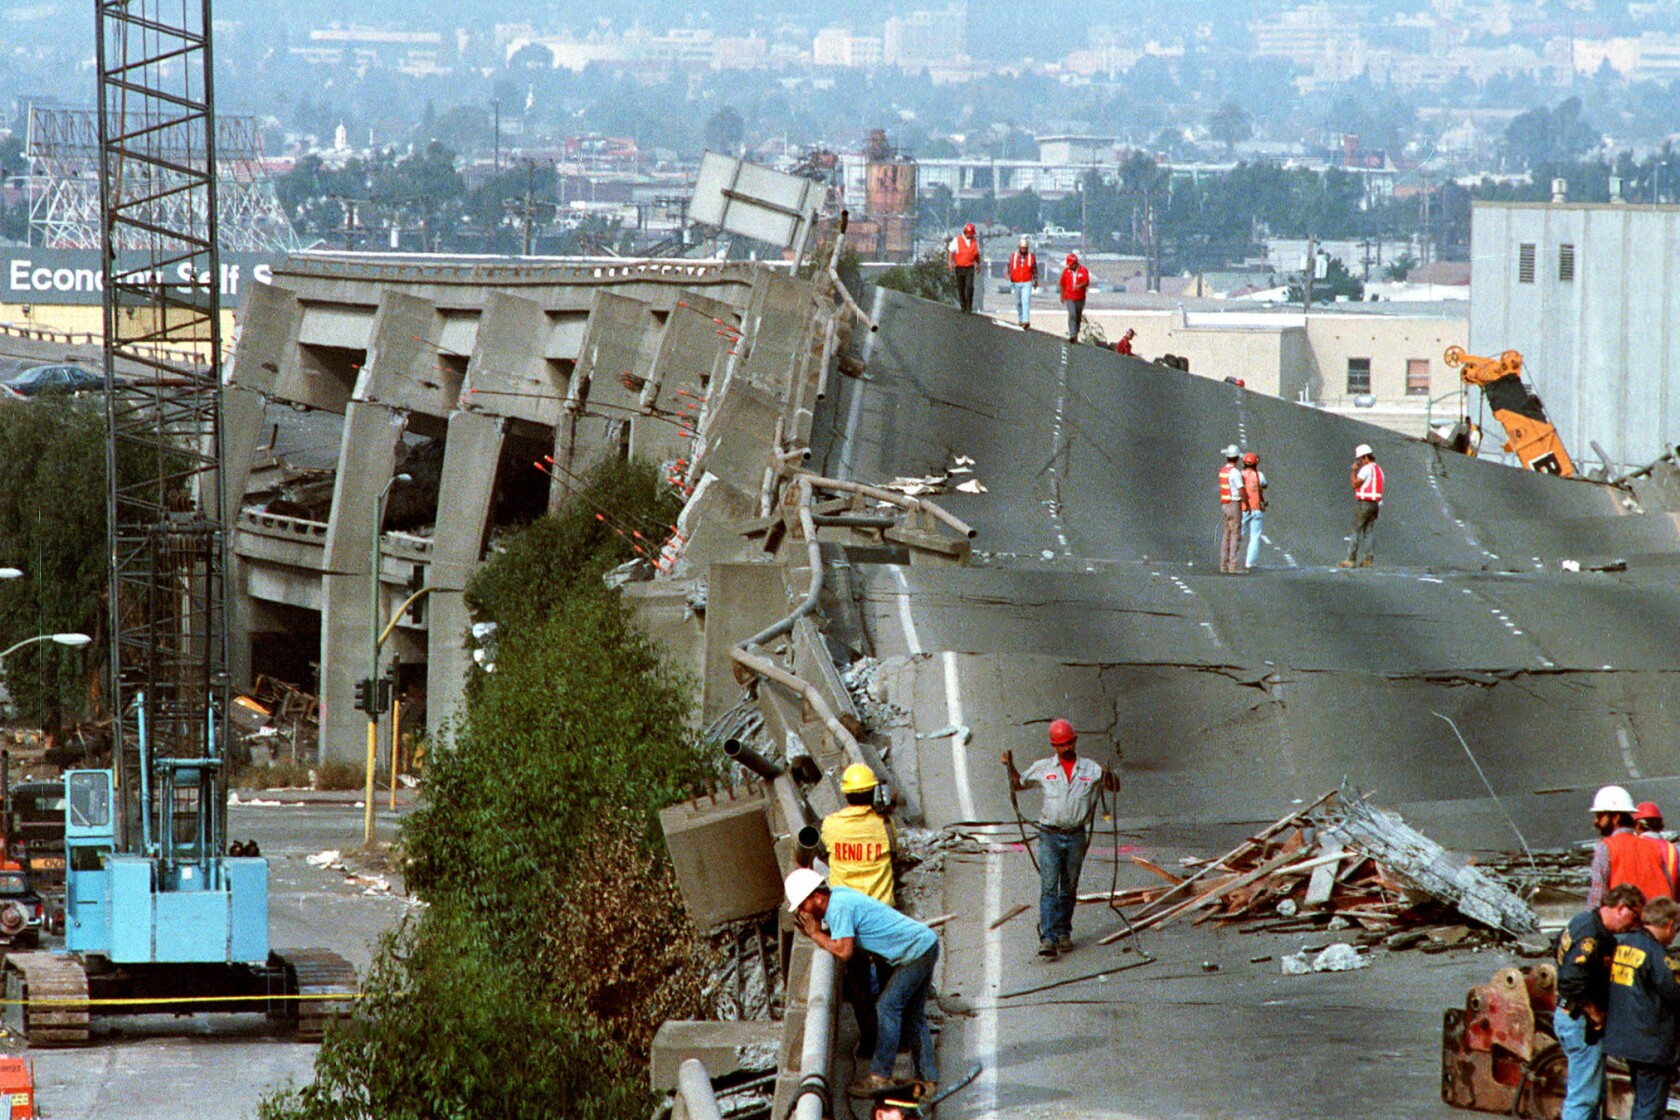 Earthquake warning app will give anyone in California the chance to prepare